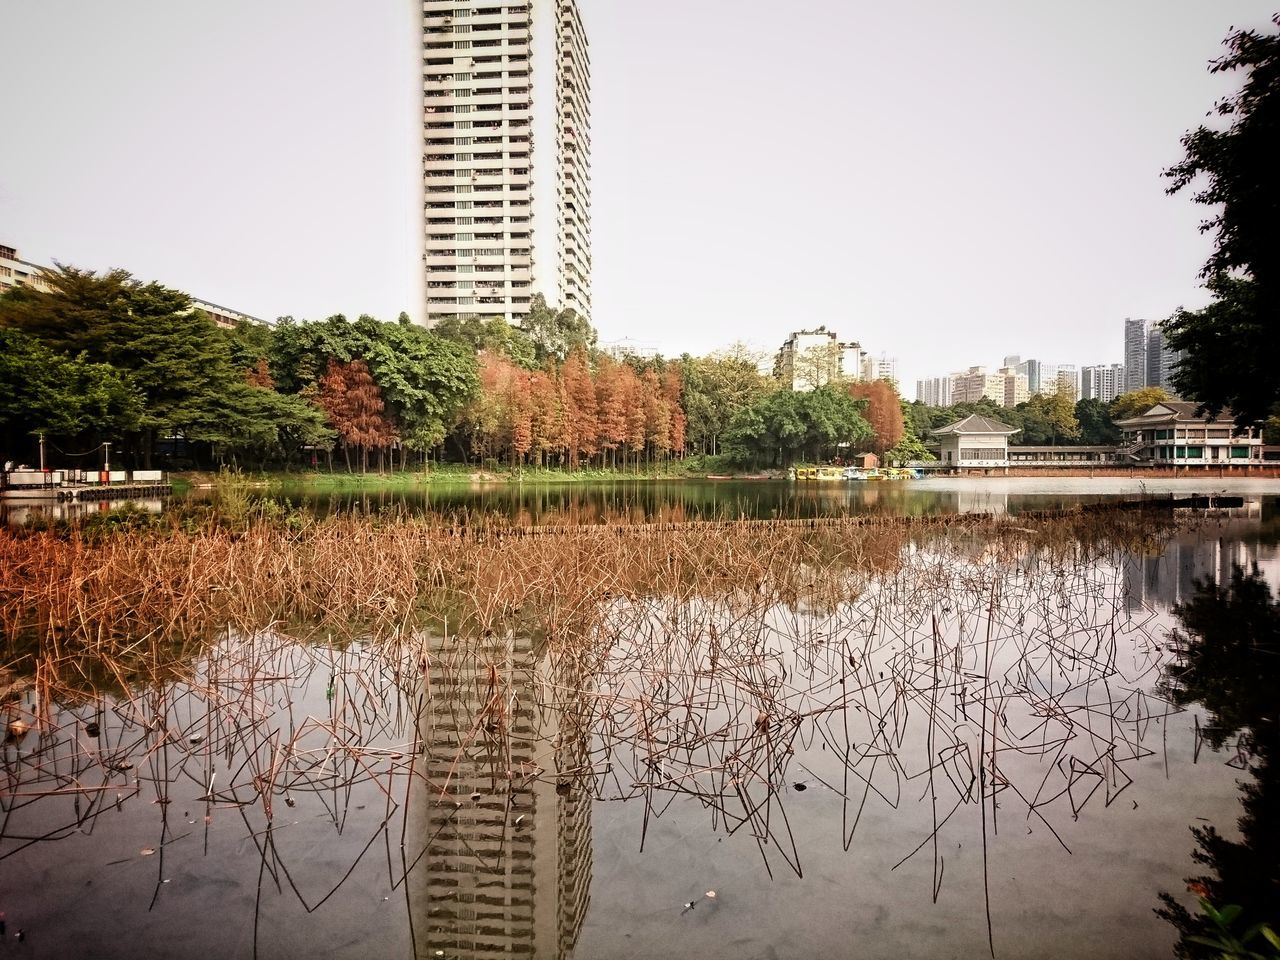 architecture, building exterior, built structure, tree, reflection, city, skyscraper, water, growth, no people, outdoors, day, nature, cityscape, sky